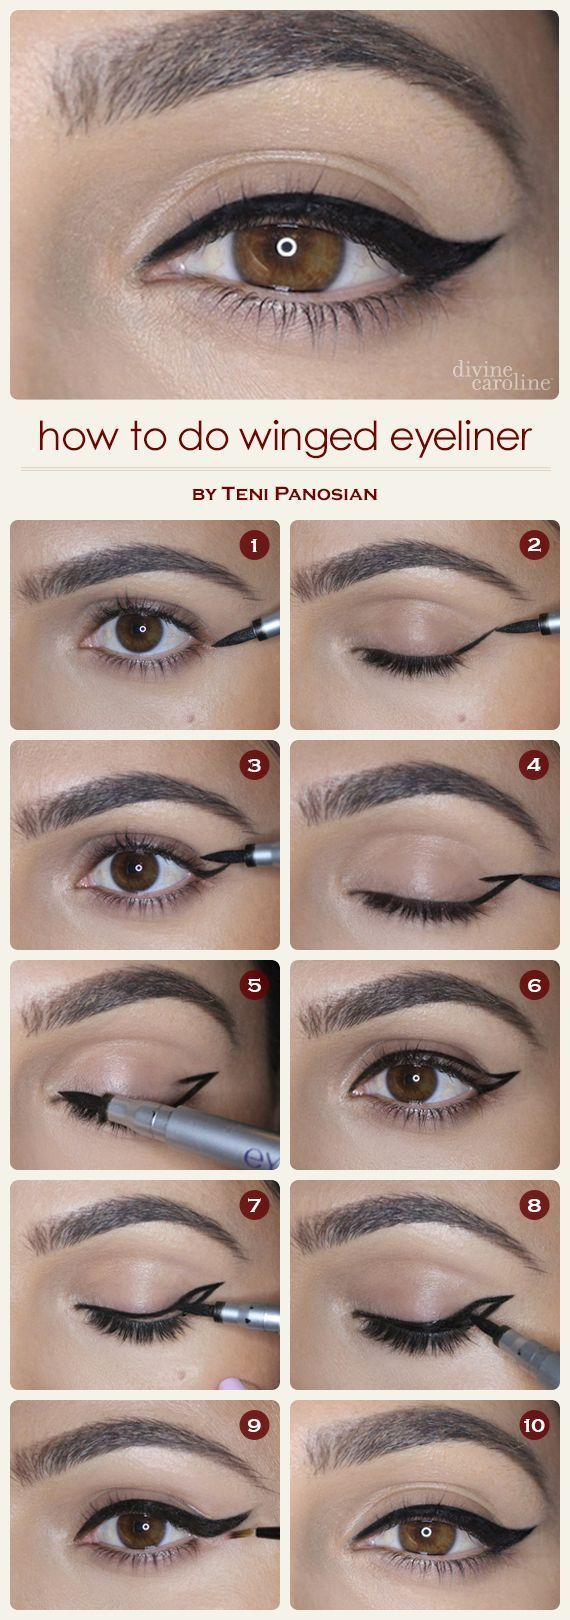 How to Do Winged Eyeliner | Easy Step By Step Tutorial on How to Achieve Perfect...